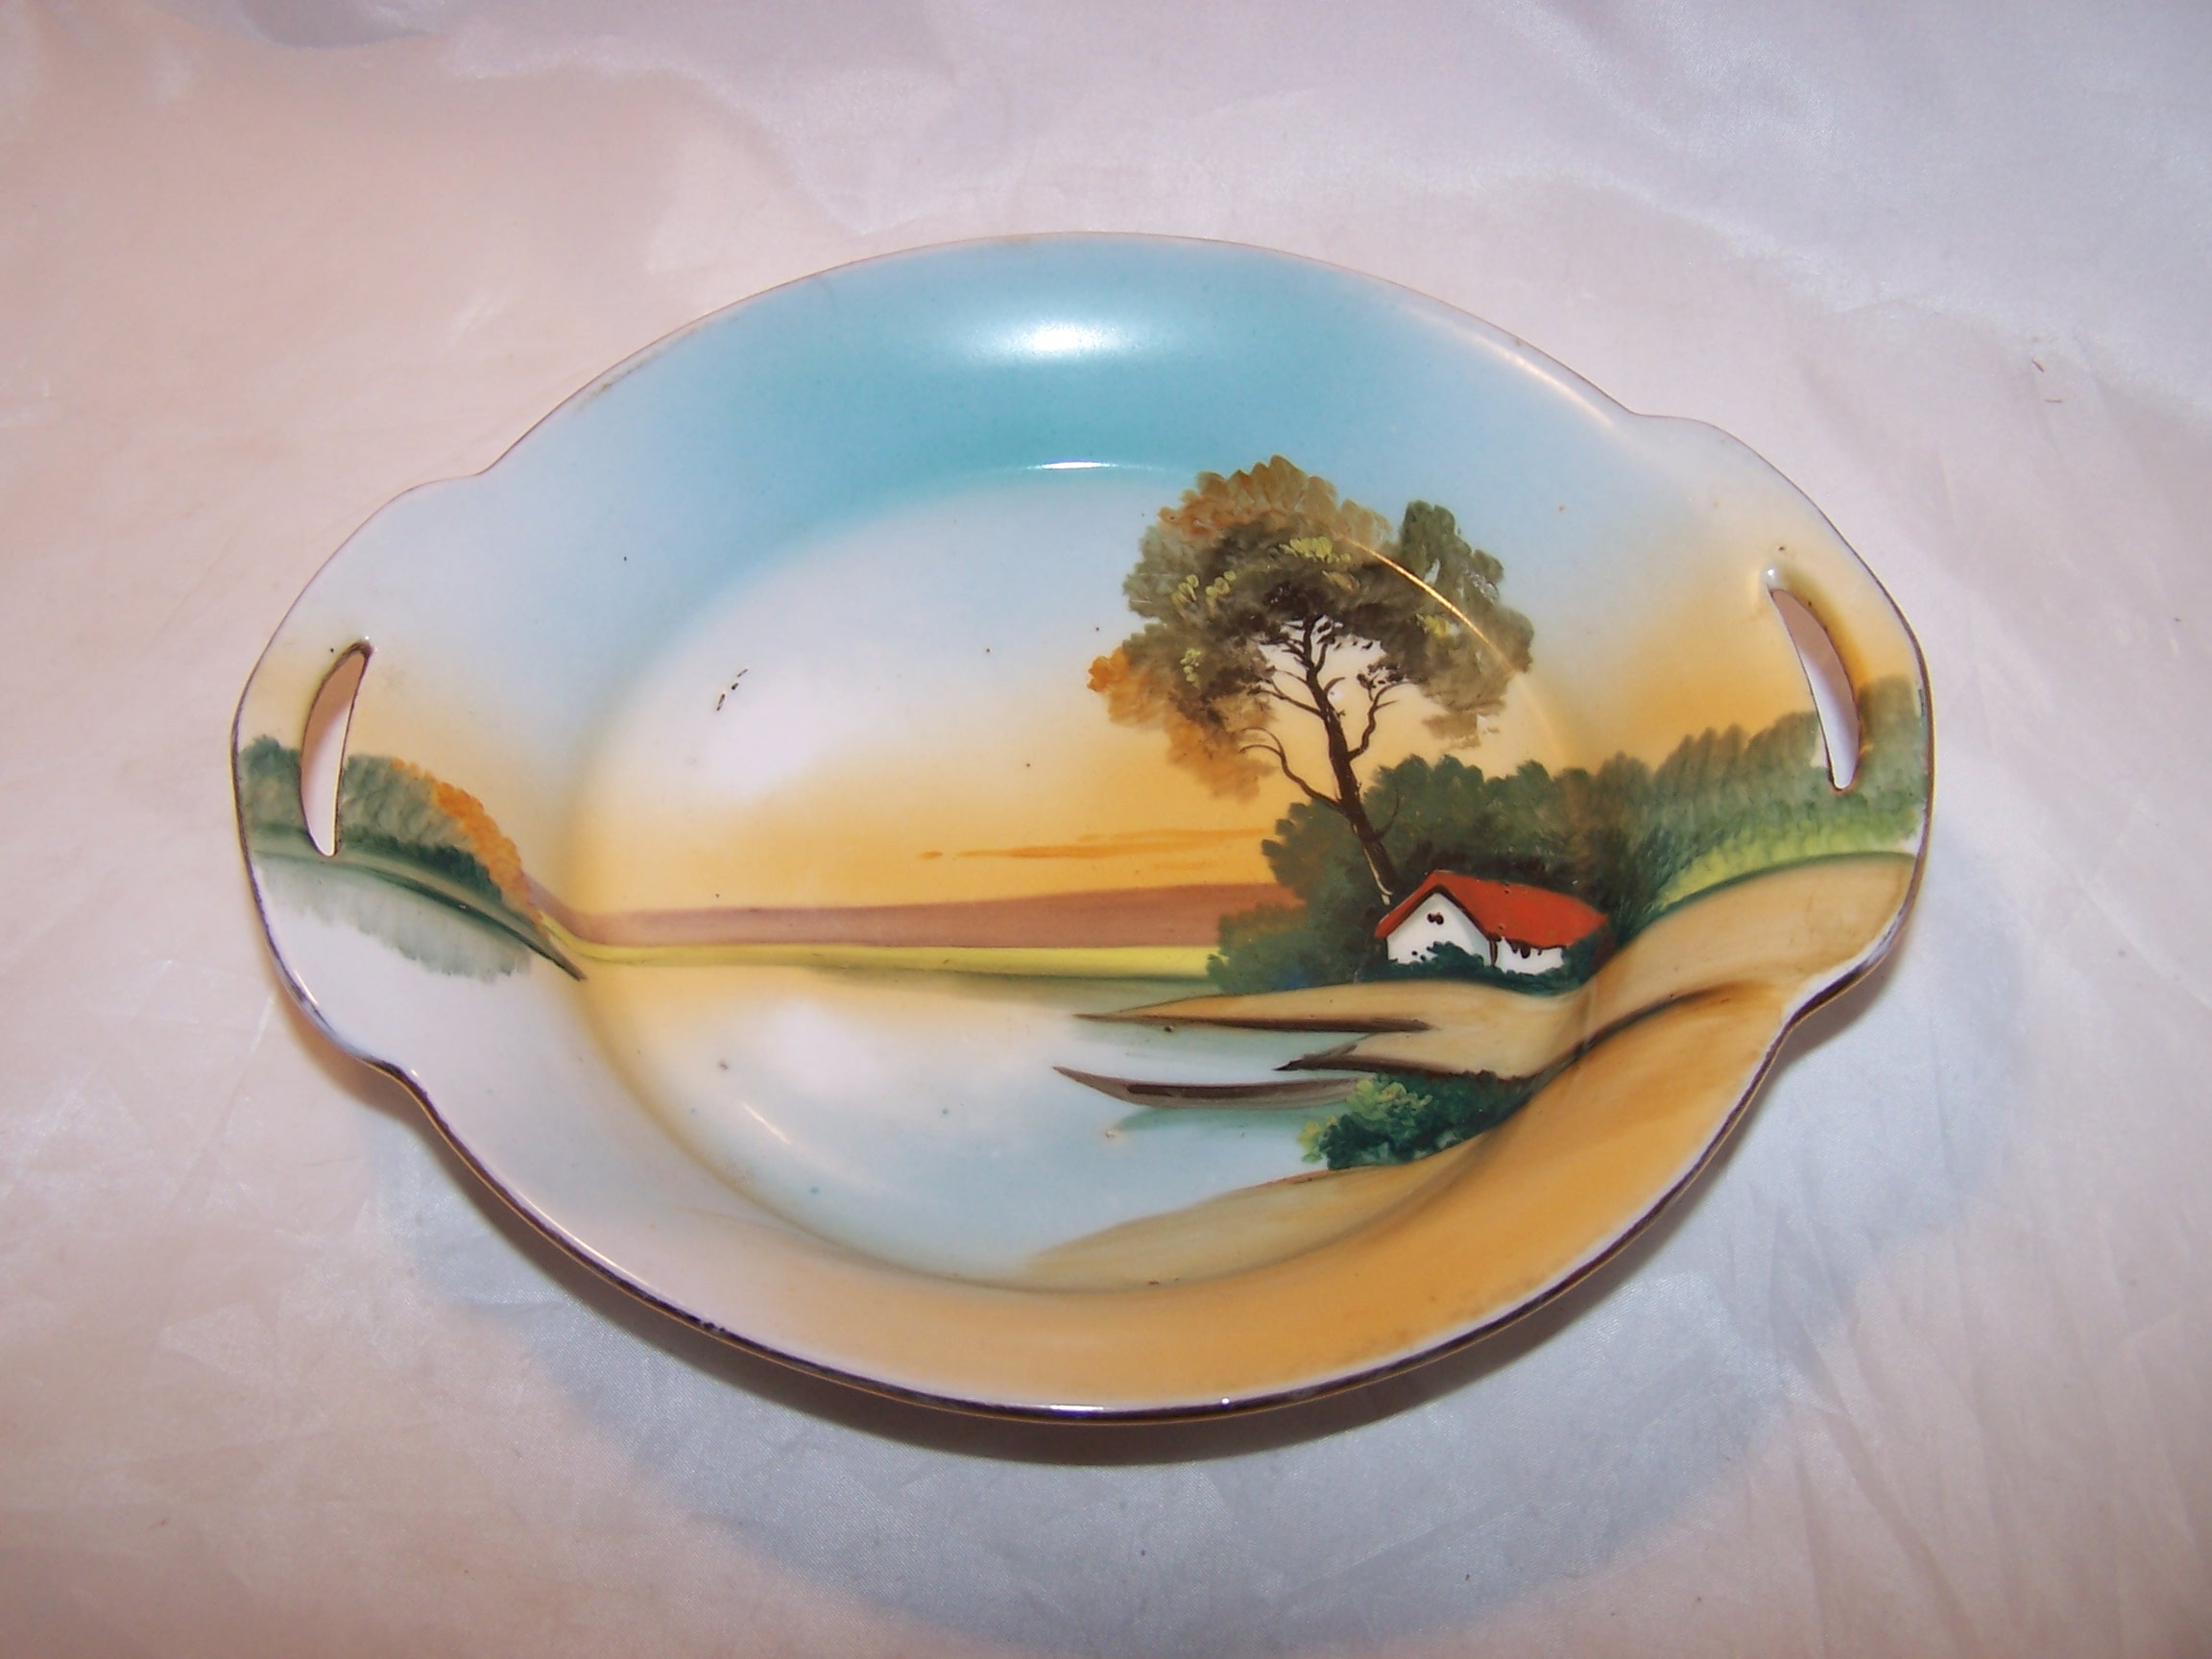 Veggie Bowl, Hand Painted, Lake Scene, Japan, Vintage